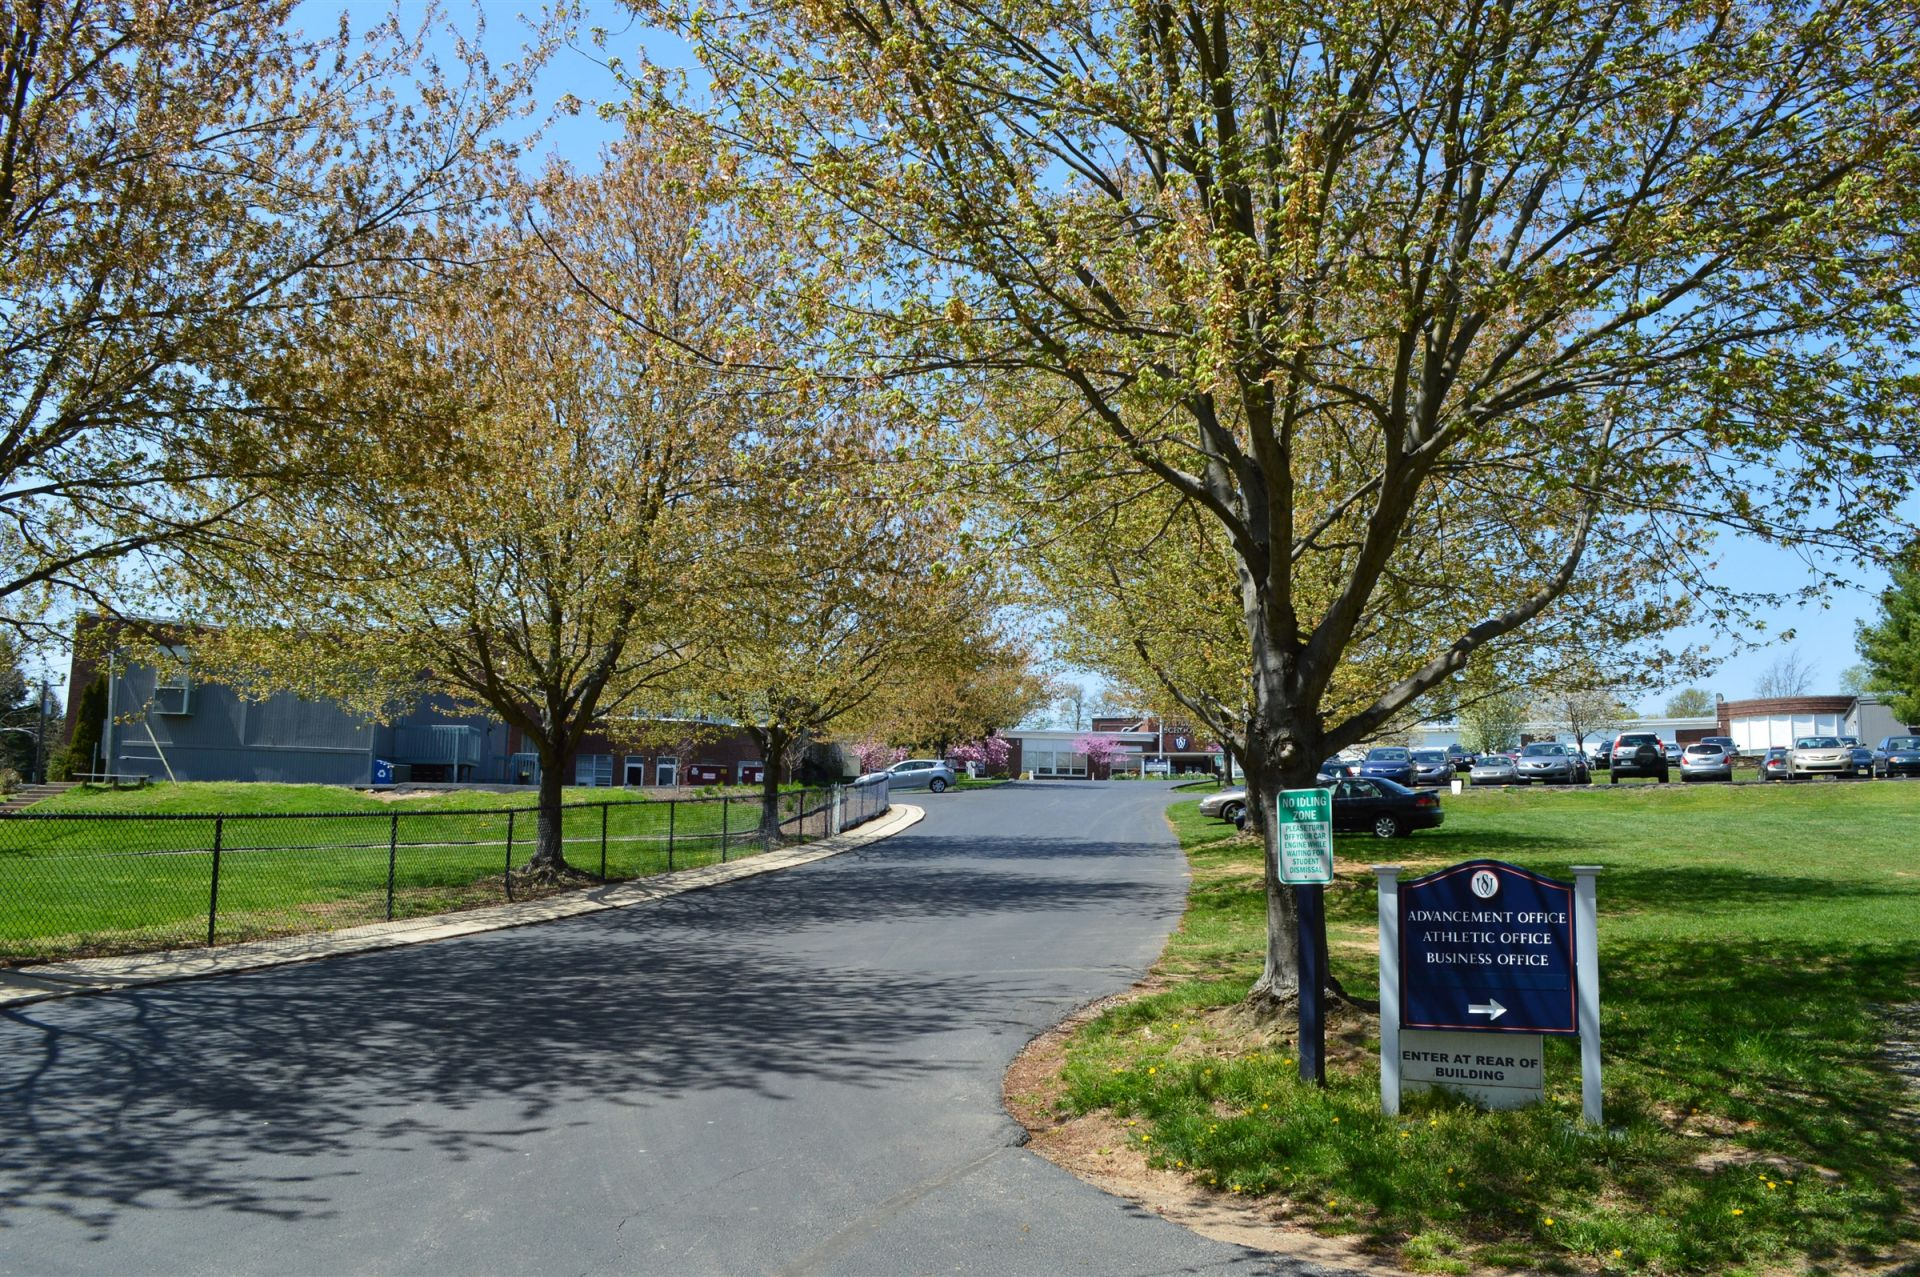 A view from the entrance to campus off of Upper Gulph Road.